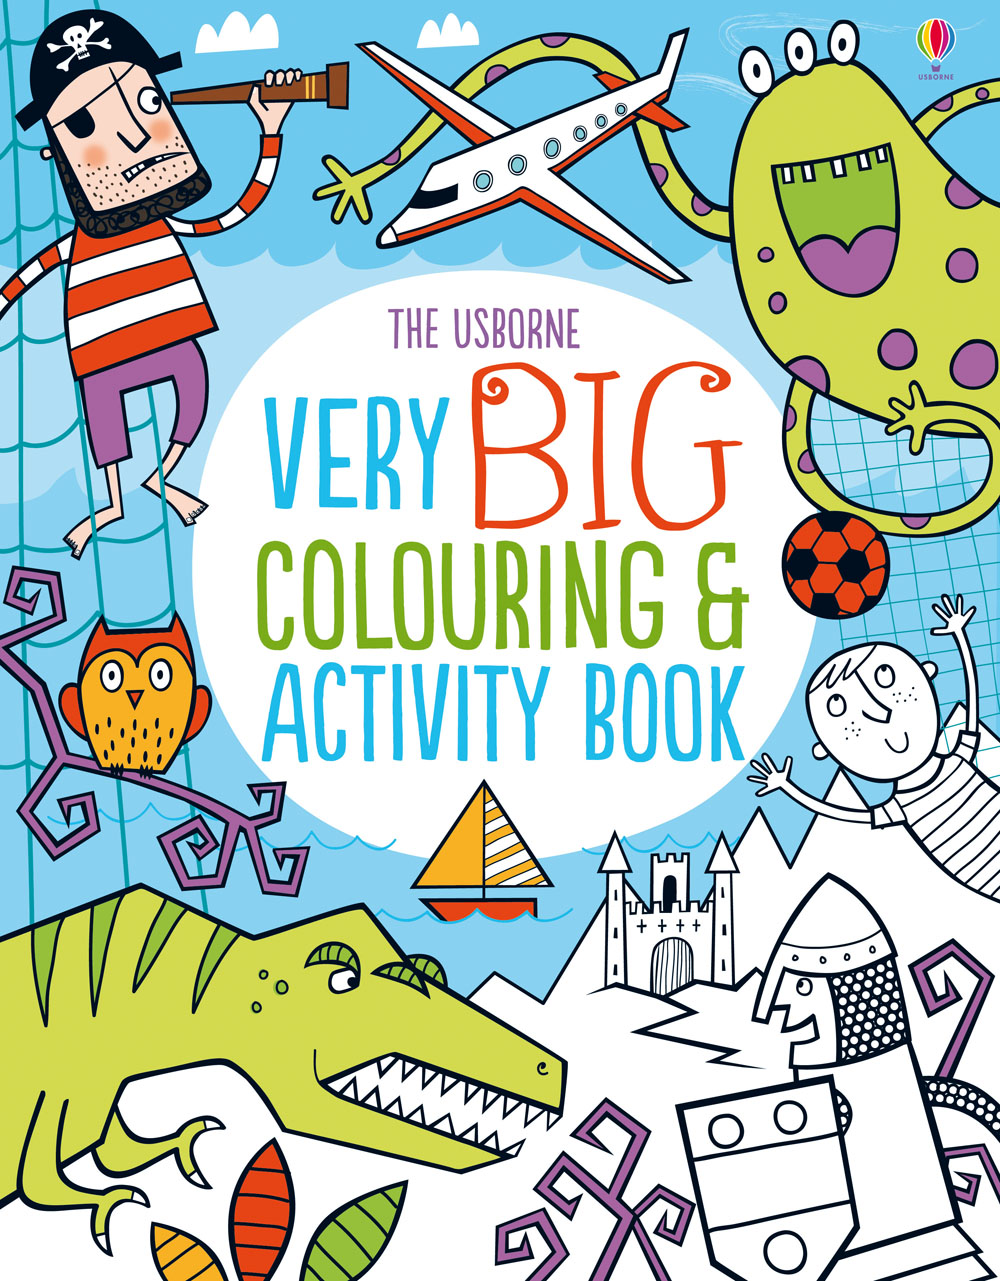 Fantastic Coloring Book Wallpaper Big Coloring Book App Square Bulk Coloring Books Animal Coloring Book Old Animal Coloring Books ColouredBig Coloring Books Very Big Colouring And Activity Book\u201d At Usborne Children\u0027s Books